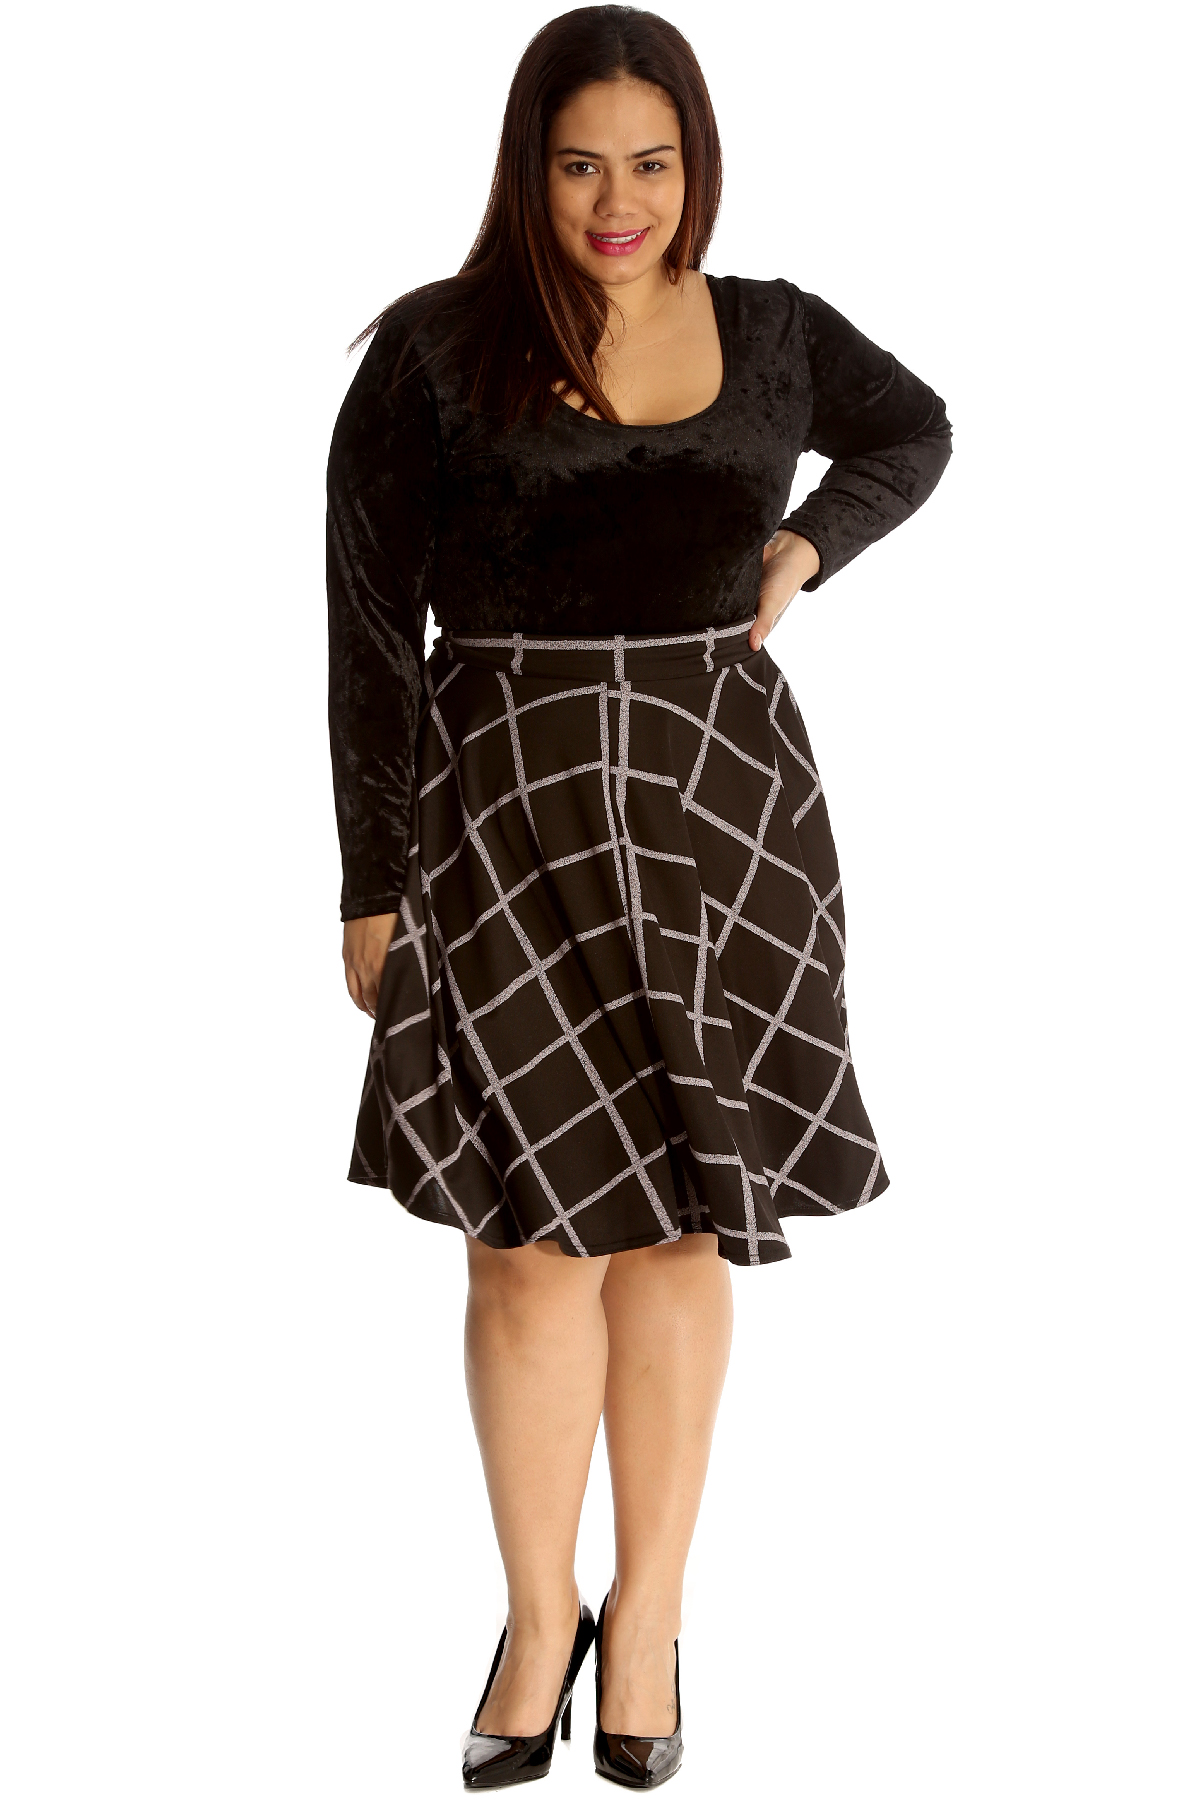 9fa852a3a2 New Womens Plus Size Skirt Ladies Skater Check Tartan Print Knee ...